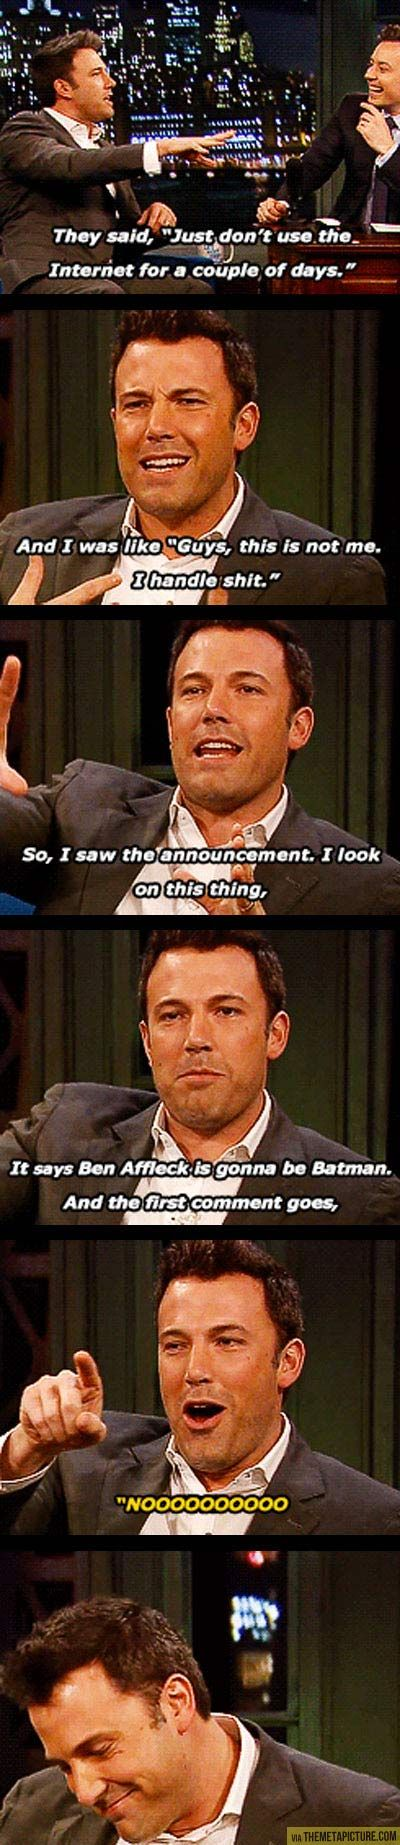 Ben Affleck on the reaction to the Batman announcement…